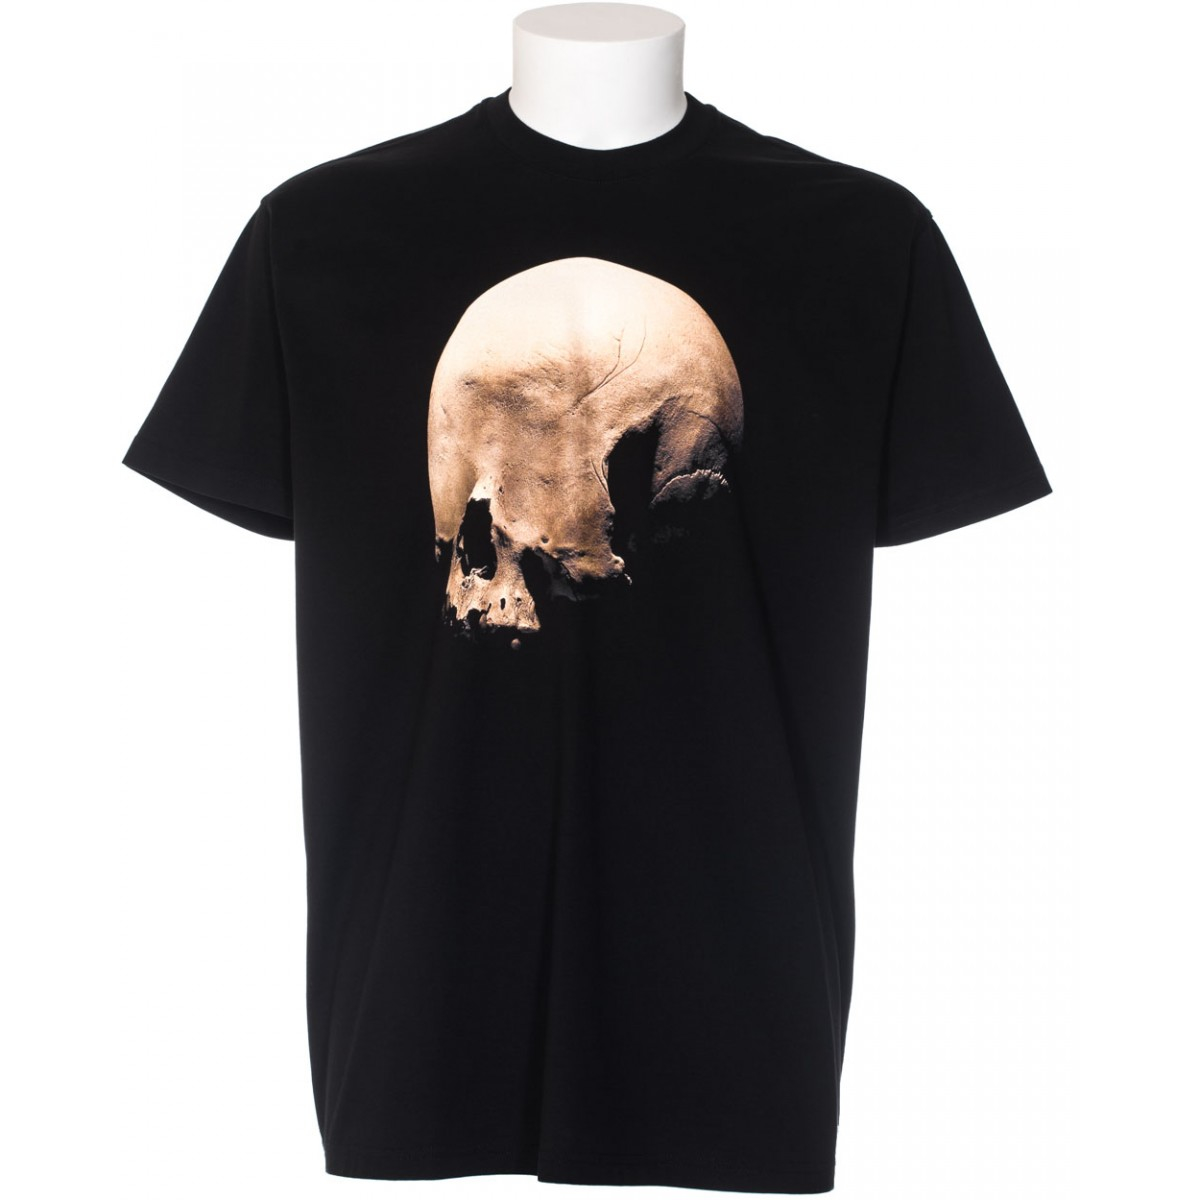 givenchy skull print cotton t shirt in black for men lyst. Black Bedroom Furniture Sets. Home Design Ideas